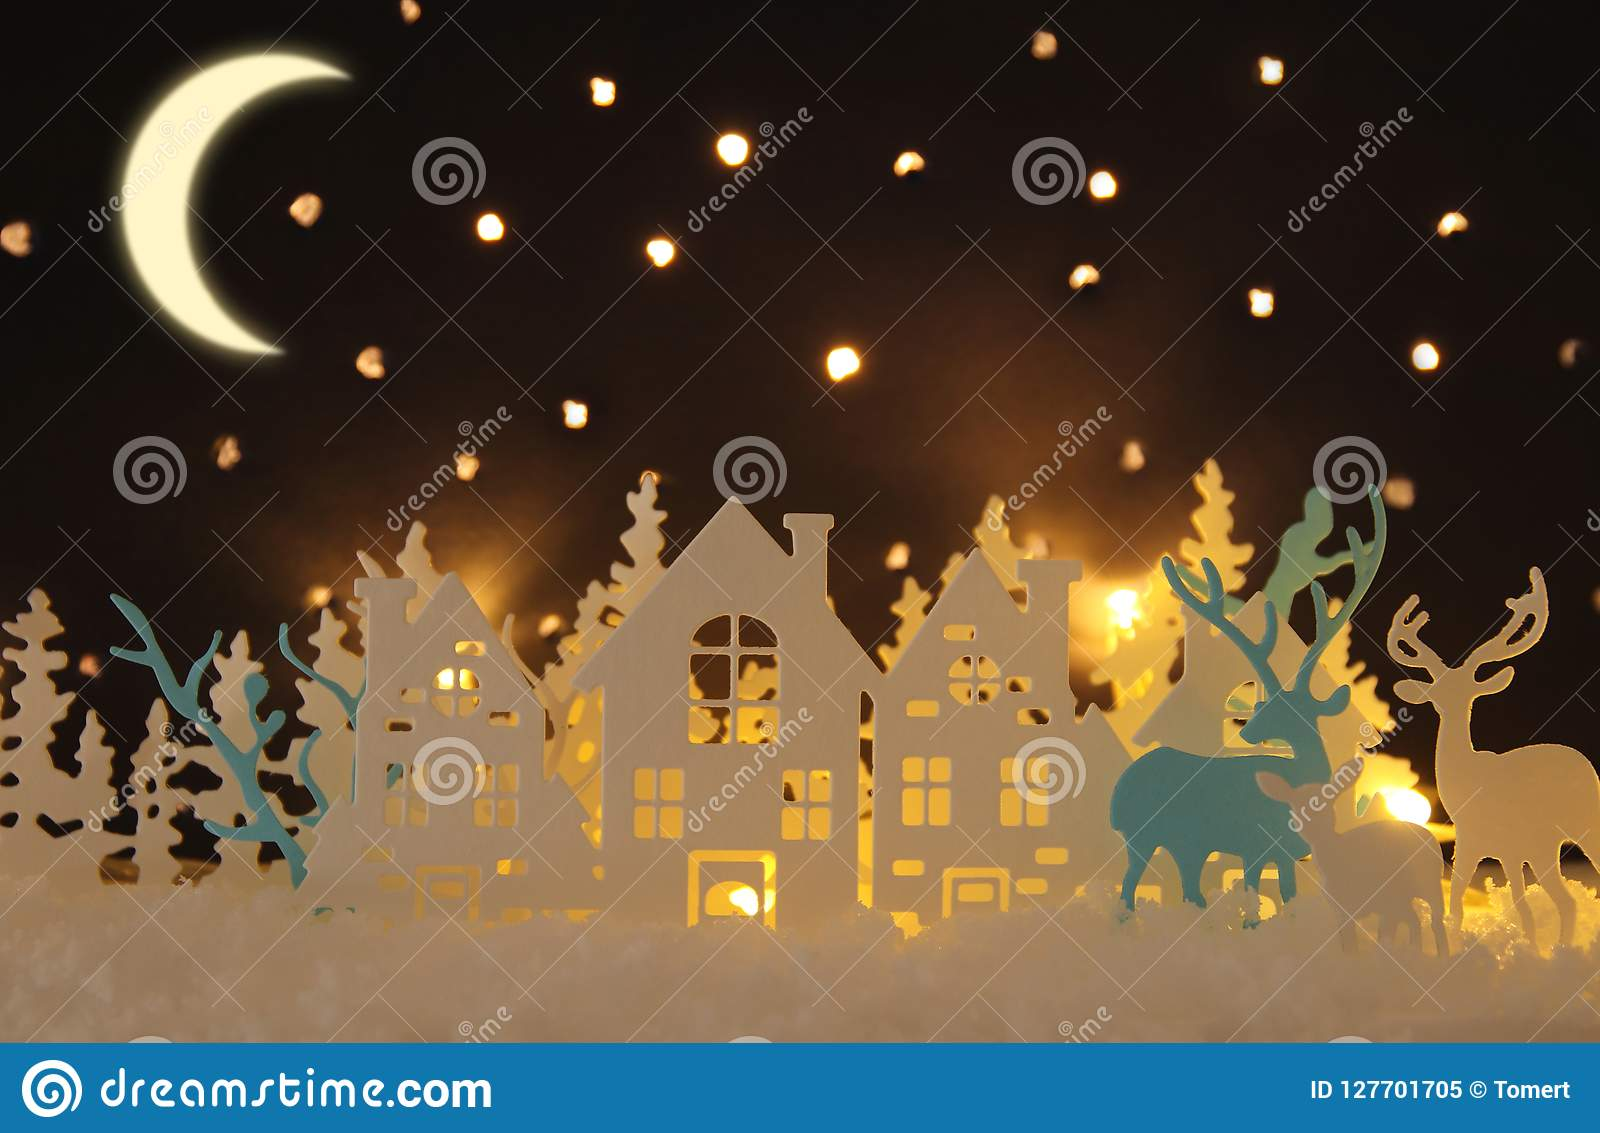 Magical Christmas paper cut winter background landscape with houses, trees, deer and snow in front of night starry sky background.